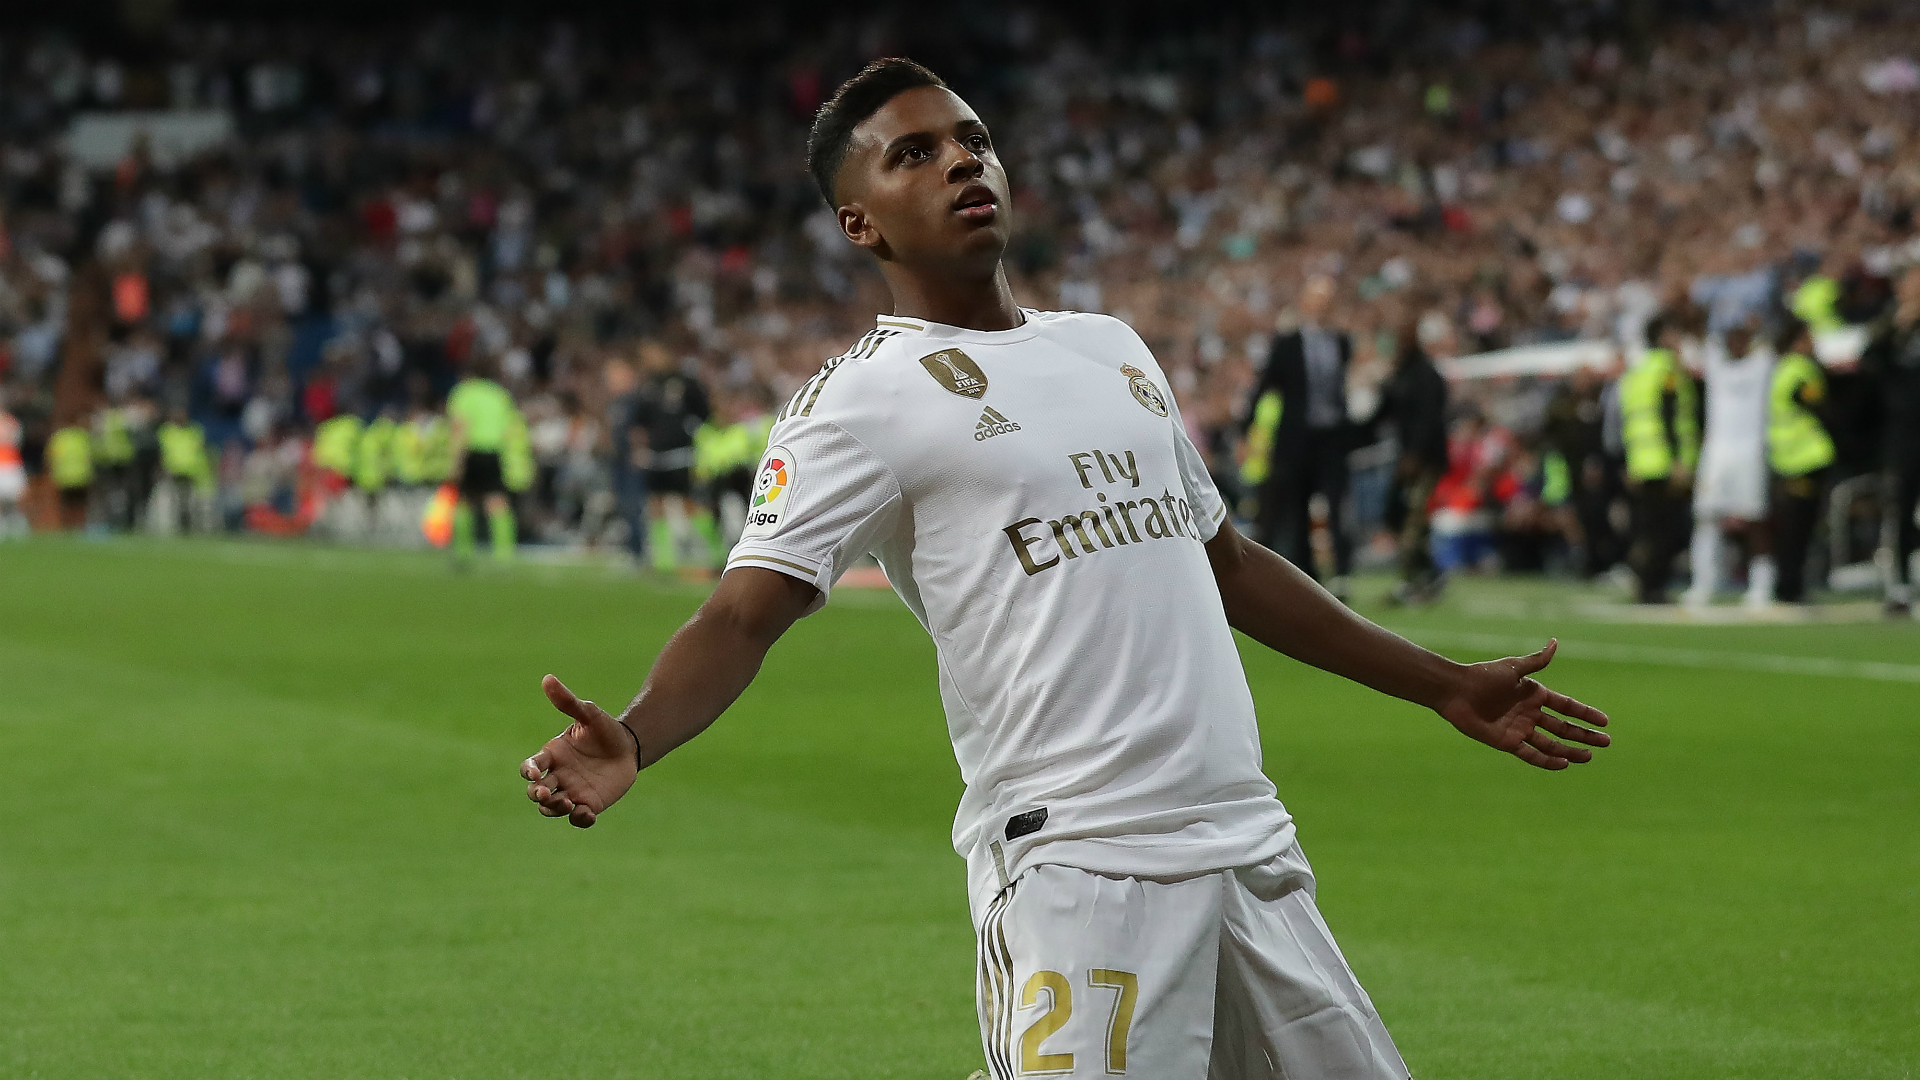 Real Madrid youngster Rodrygo earns first call-up to Brazil squad